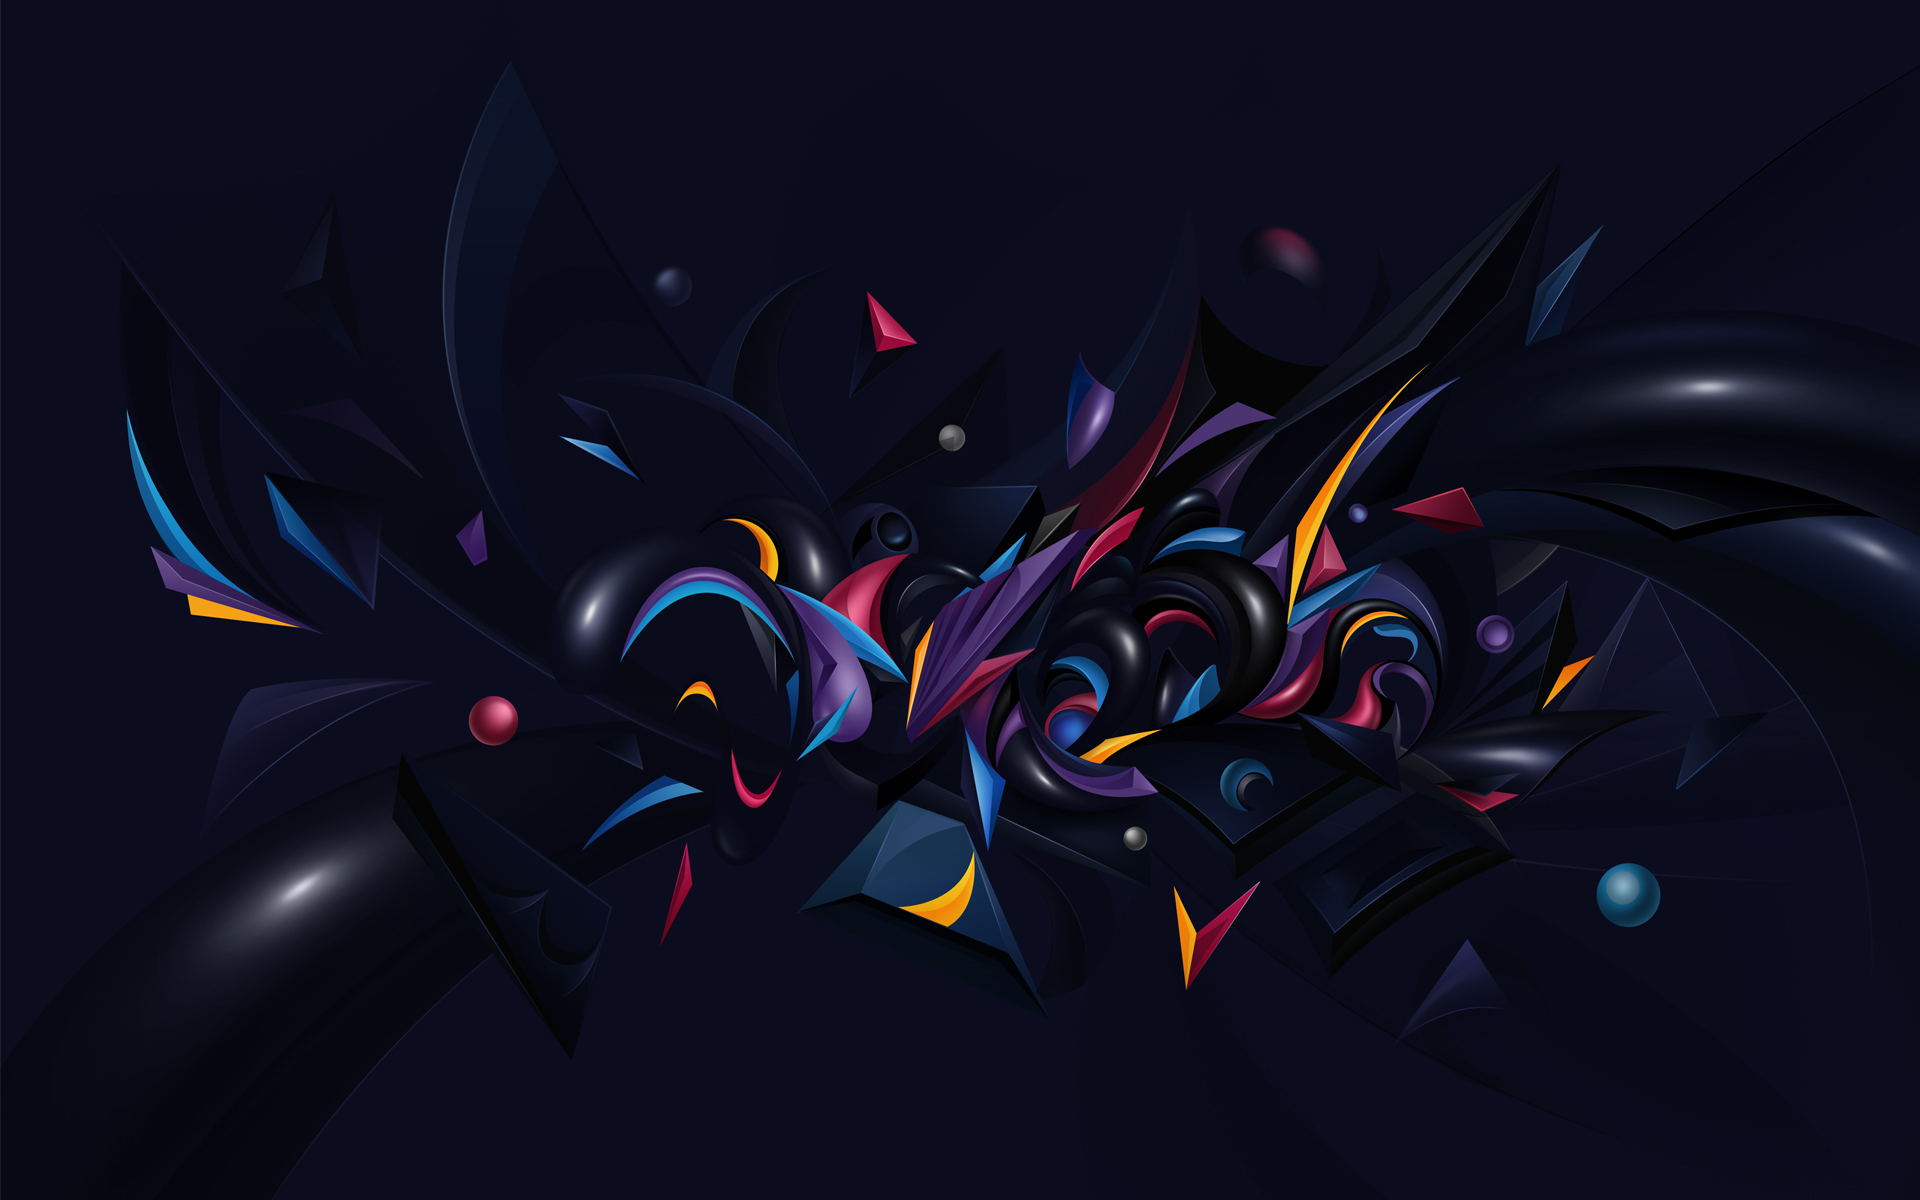 Abstract Chaos Wallpapers HD Wallpapers 1920x1200